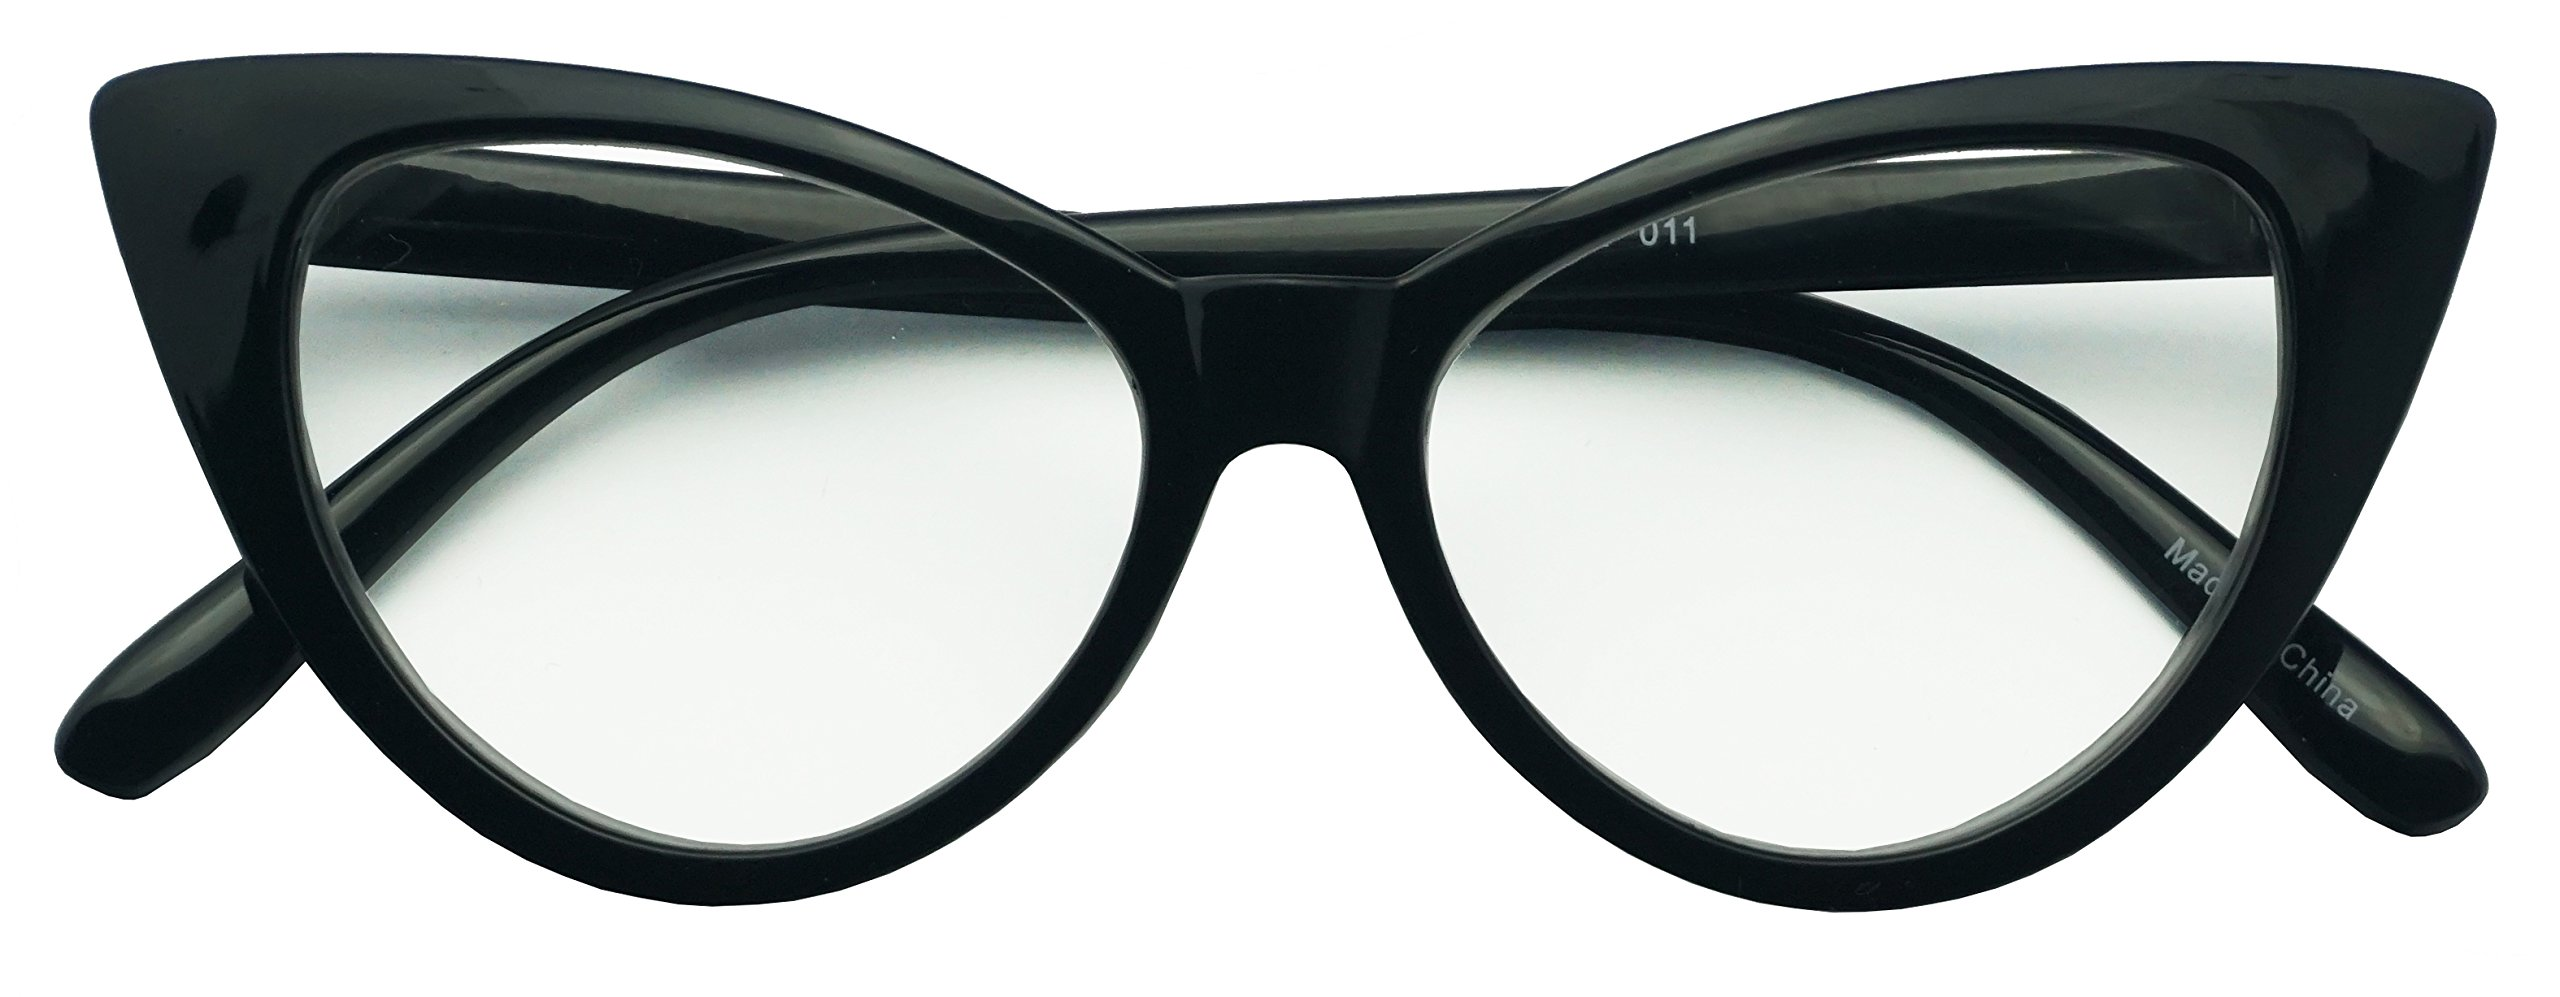 62mm Round Pointed Cat Eye Rx +2.00 Magnifying Reading Readers Glasses for Women (Black, +2.00)